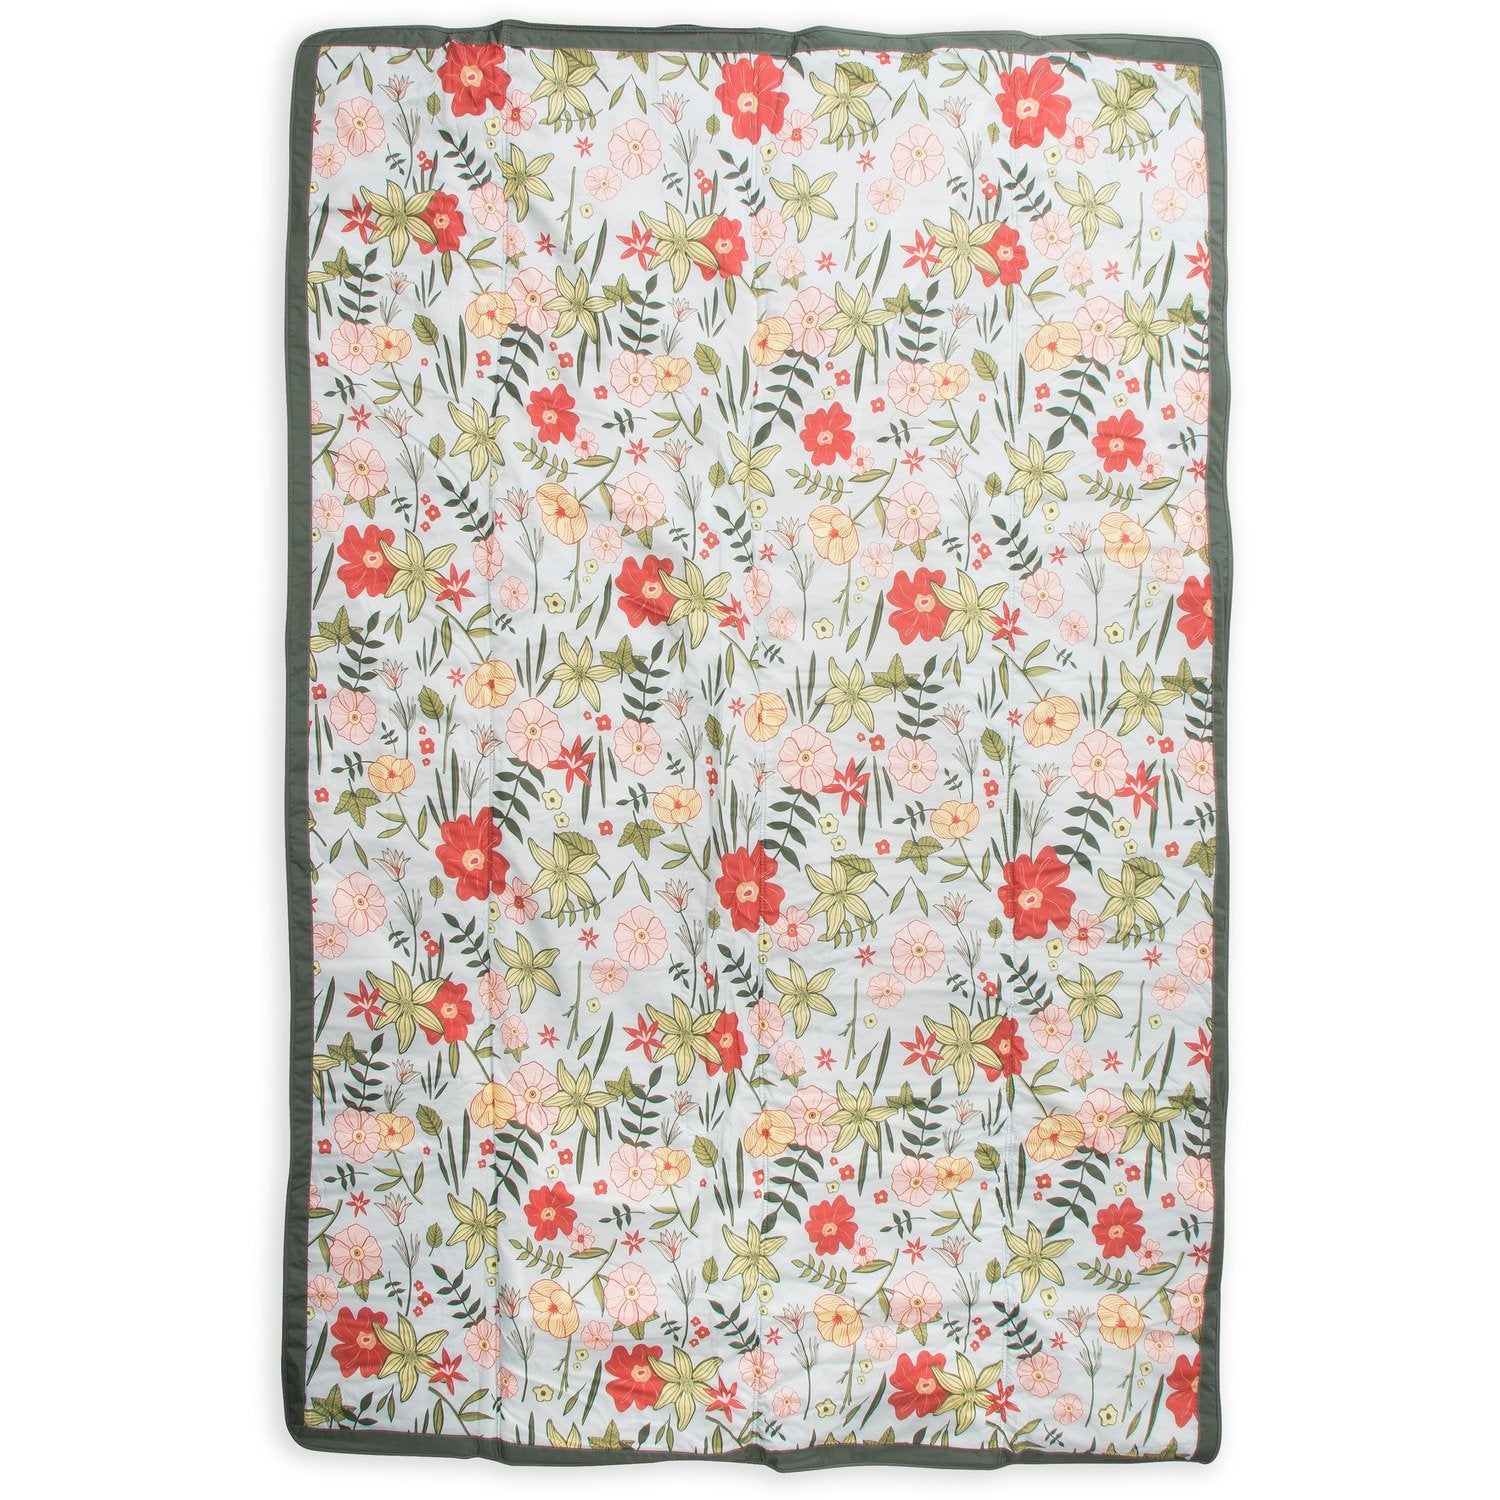 OUTDOOR BLANKET 5x7 - PRIMROSE PATCH - Made by McNamara